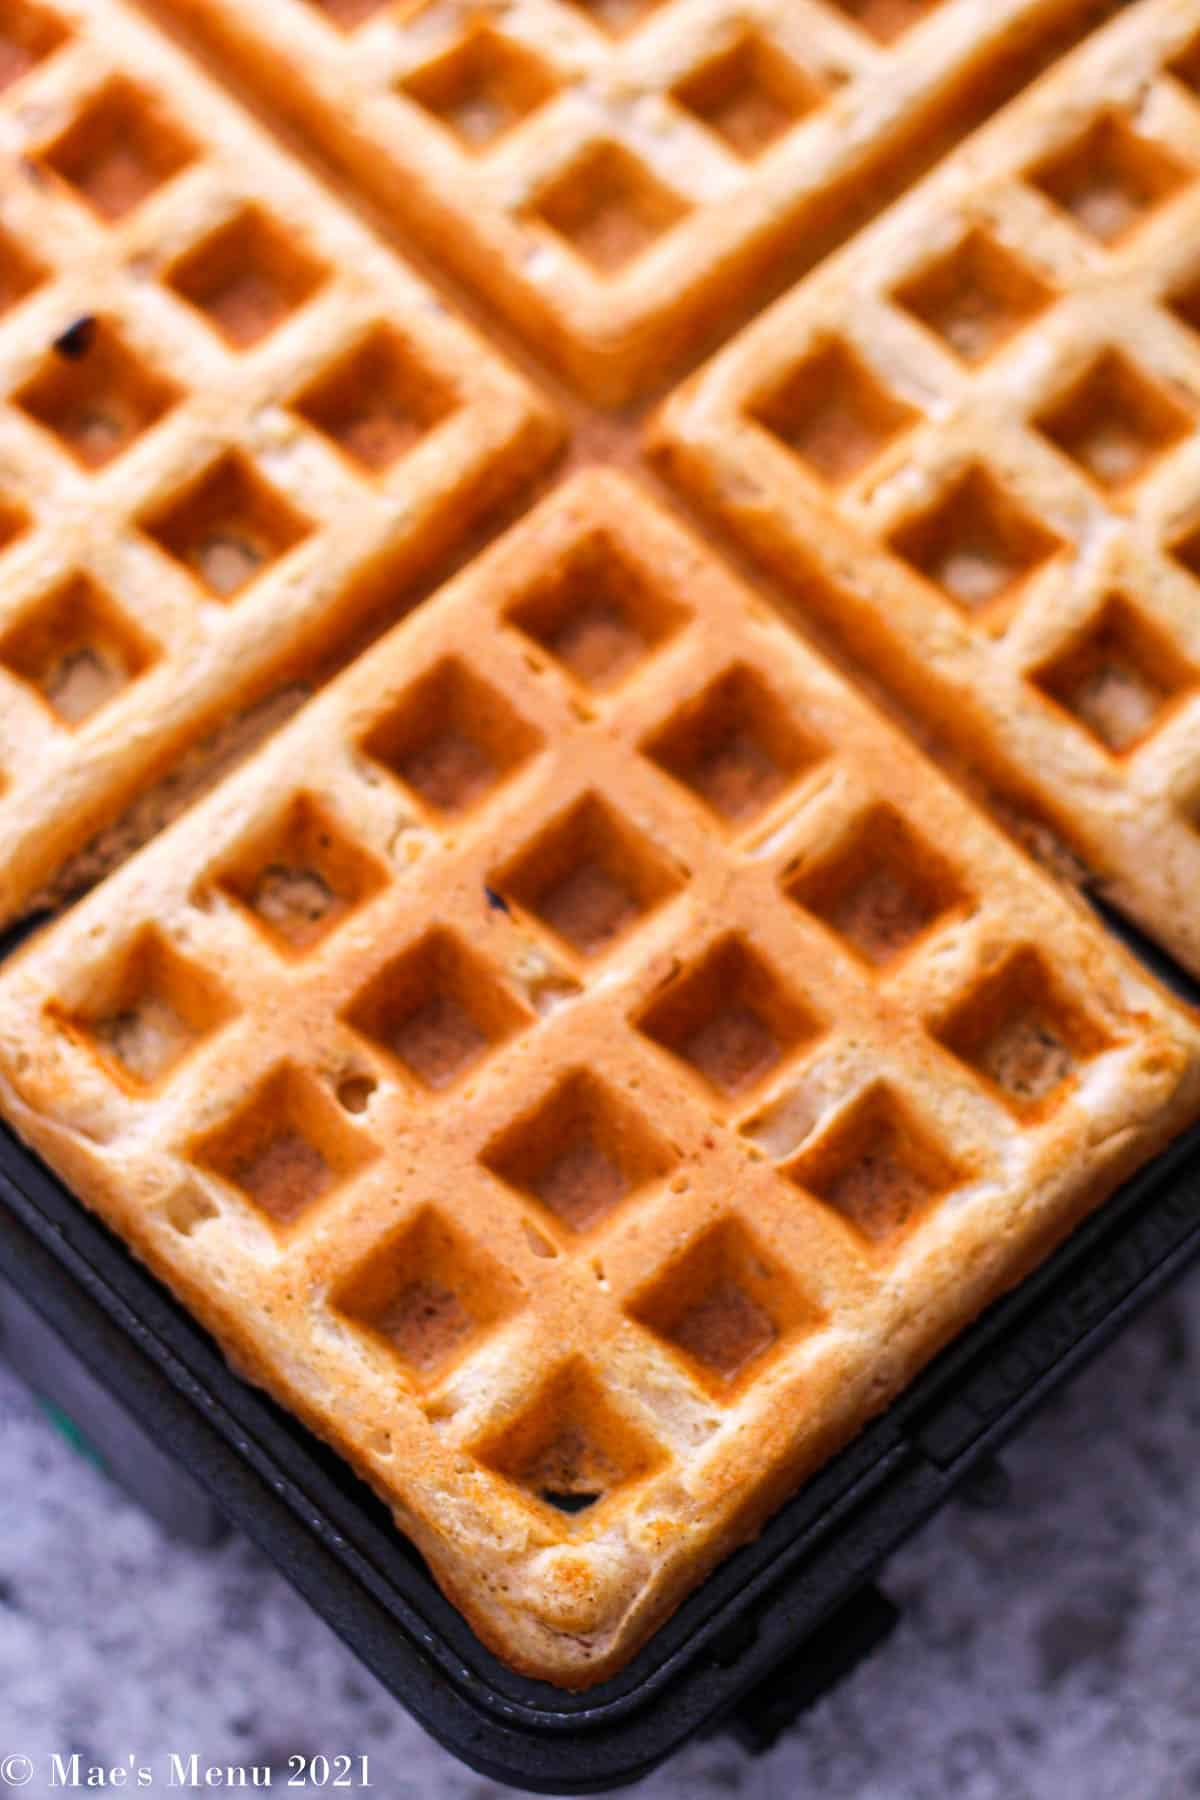 An up-close overhead shot of waffles on a waffle iron